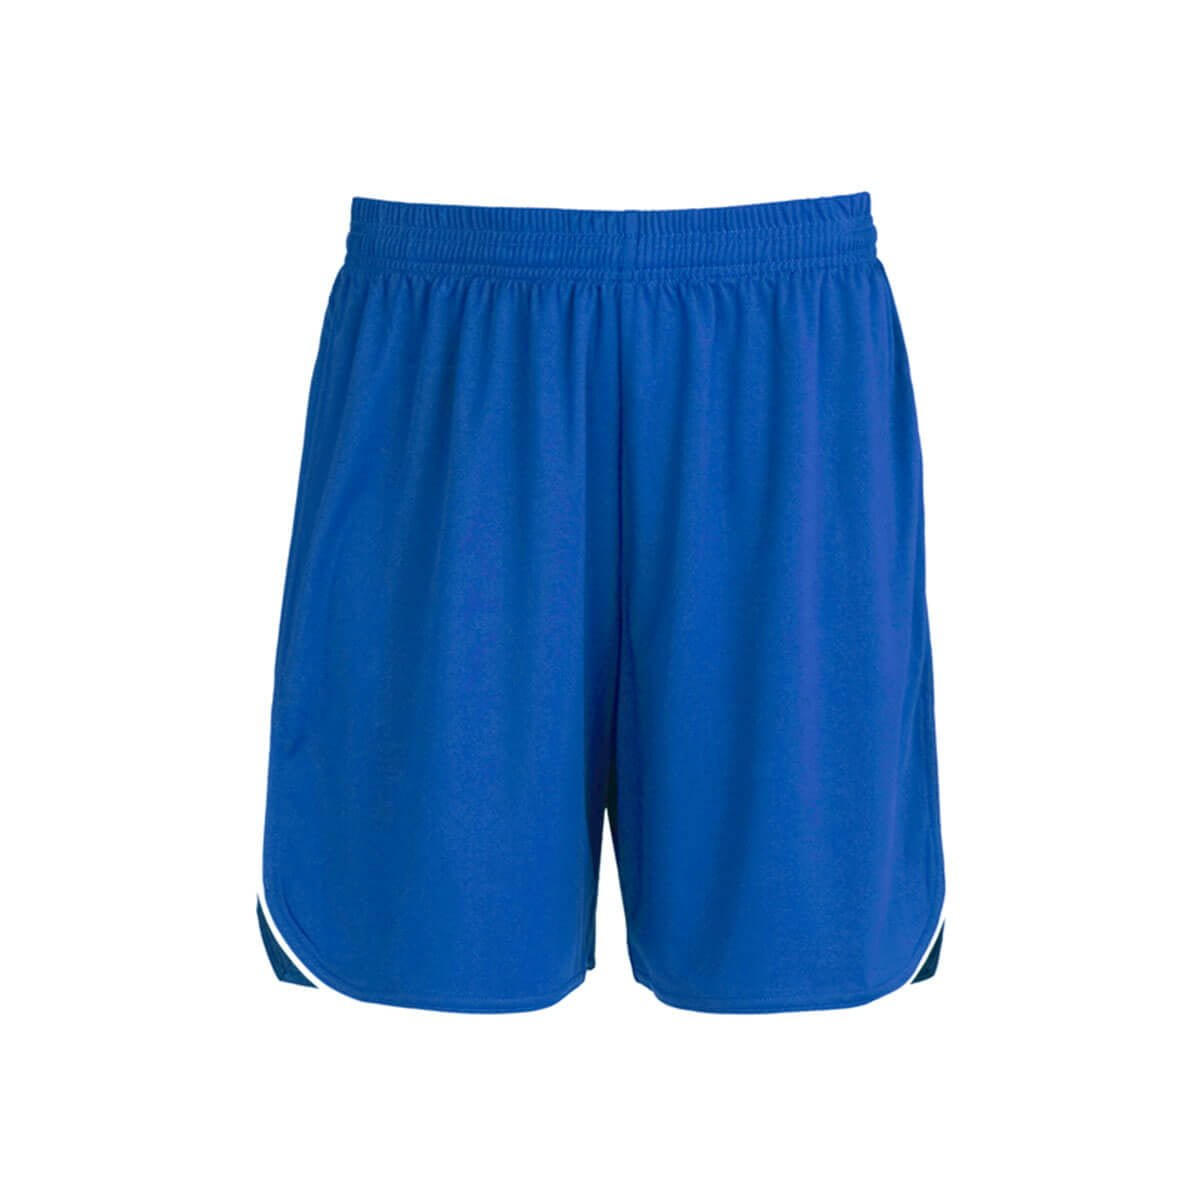 Mens Sonic Shorts-Royal / White